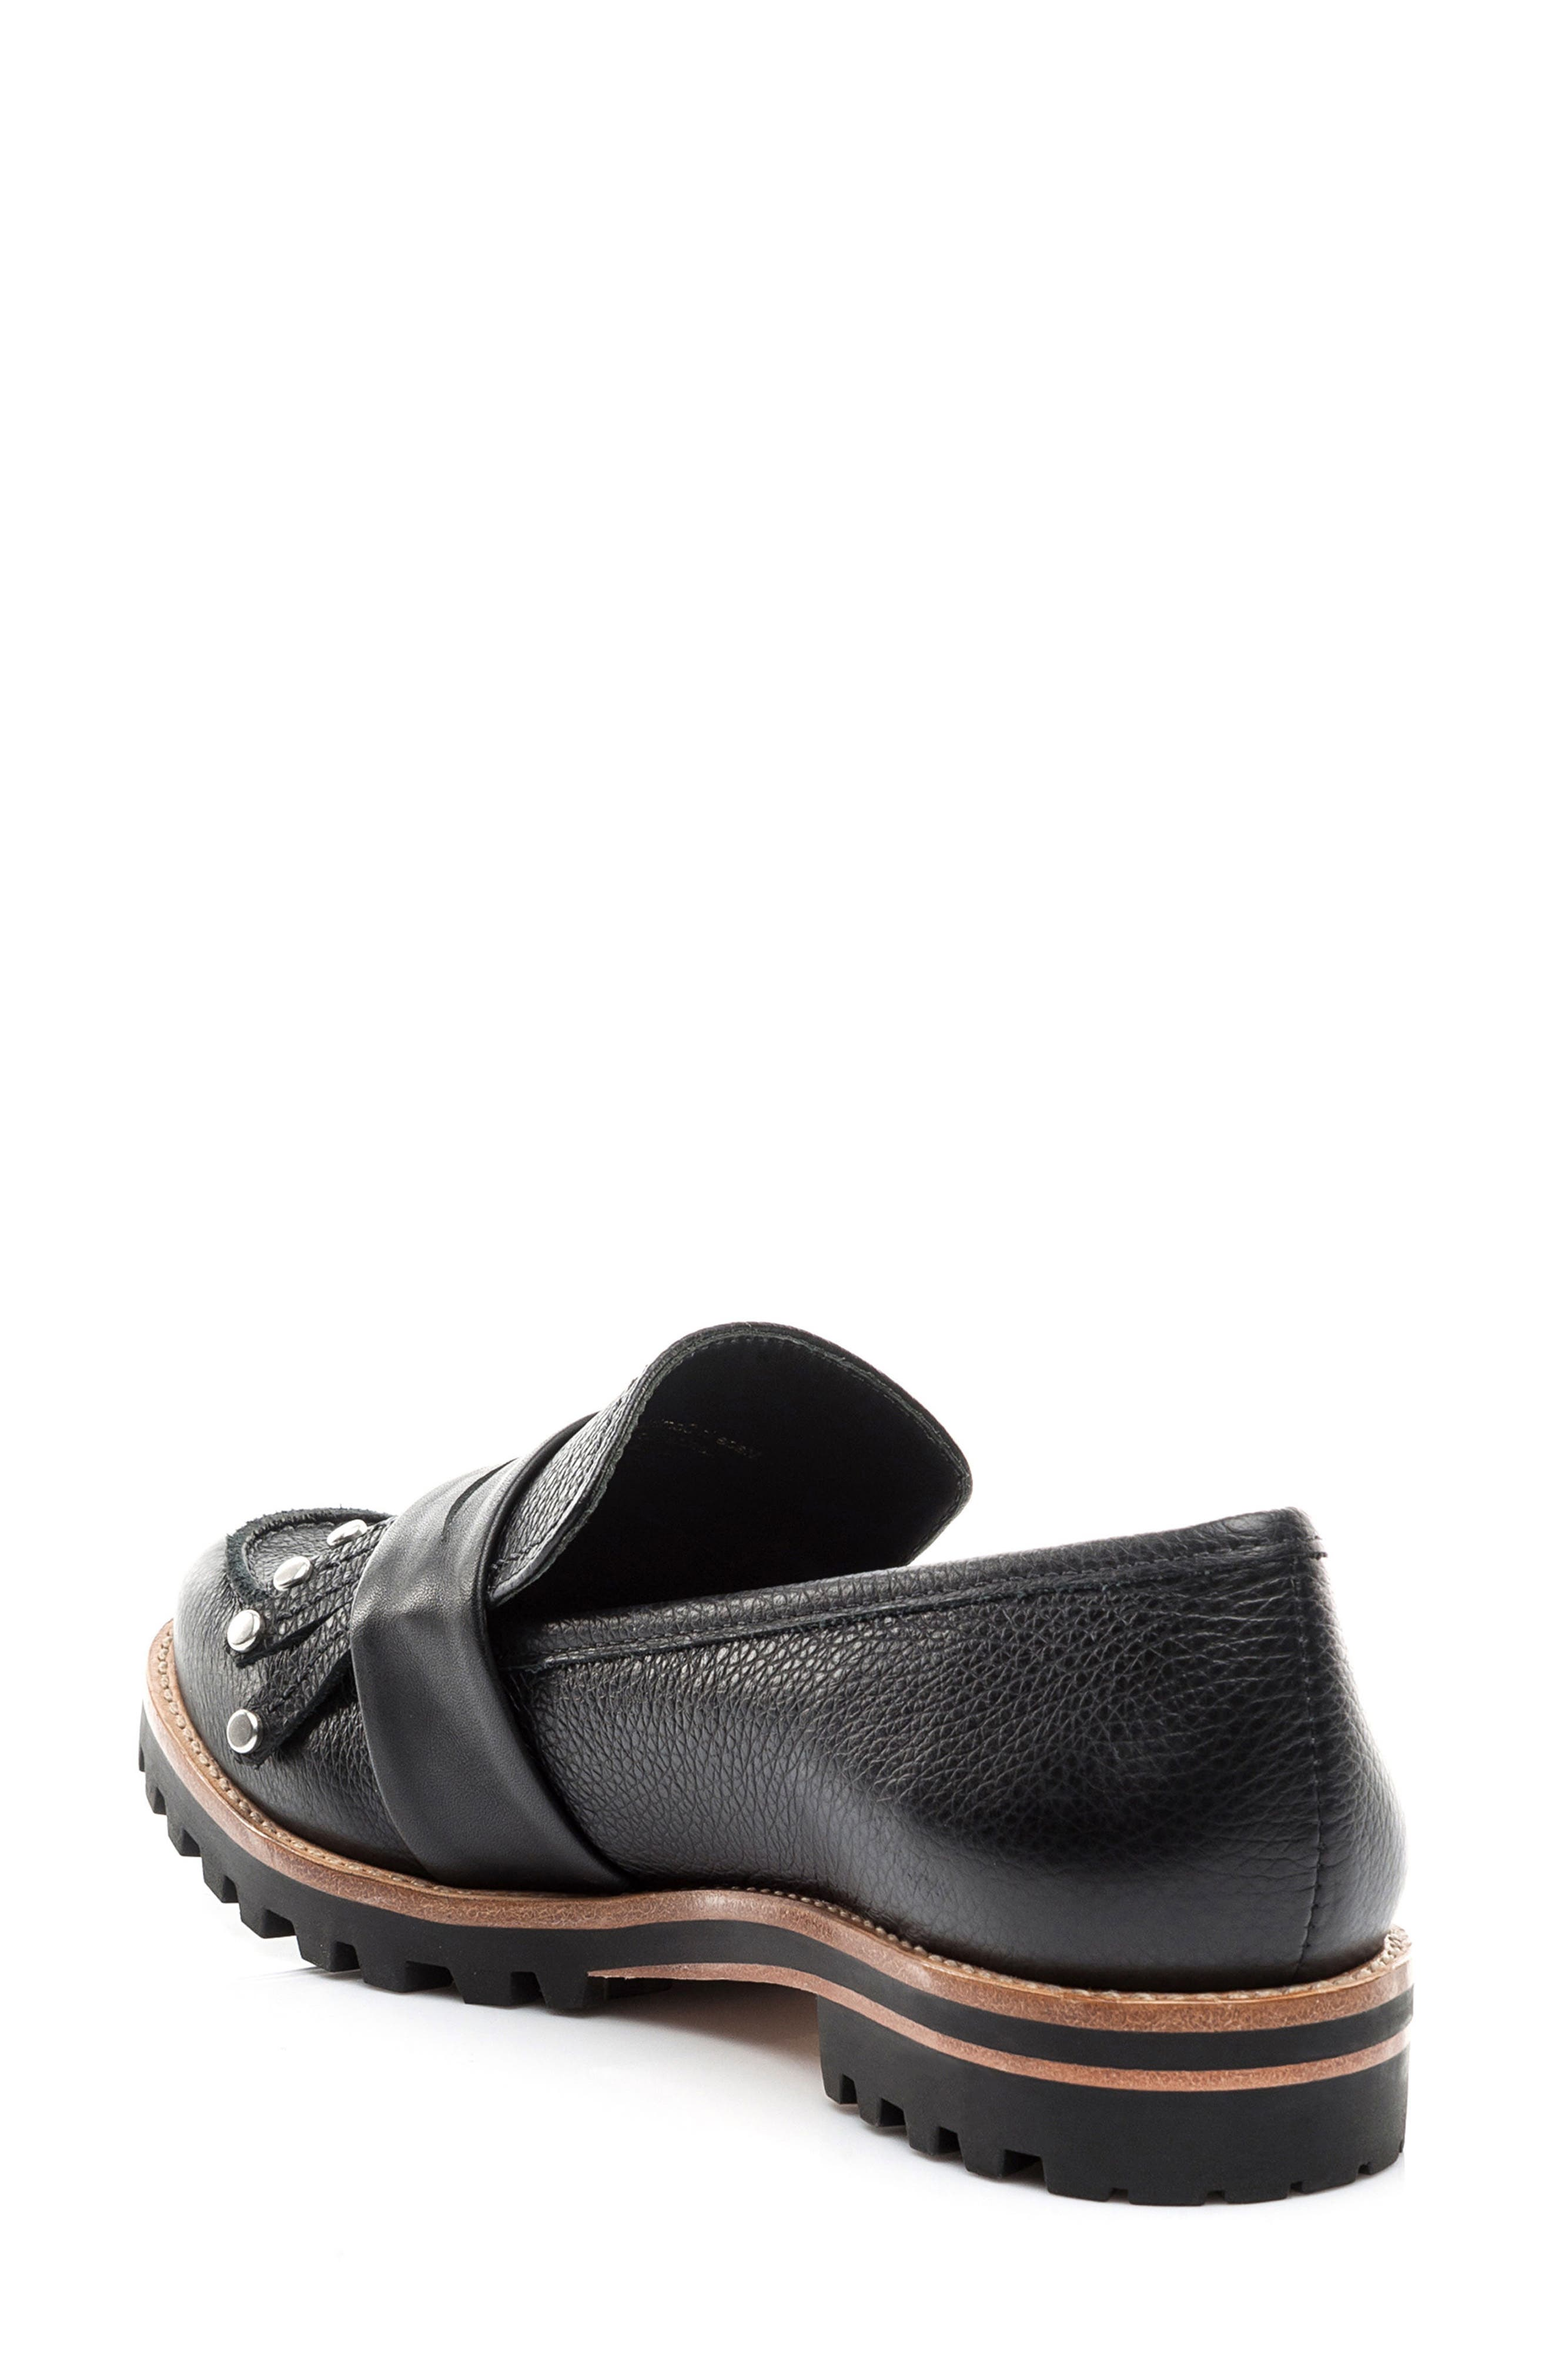 Olley Loafer,                             Alternate thumbnail 2, color,                             Black Leather